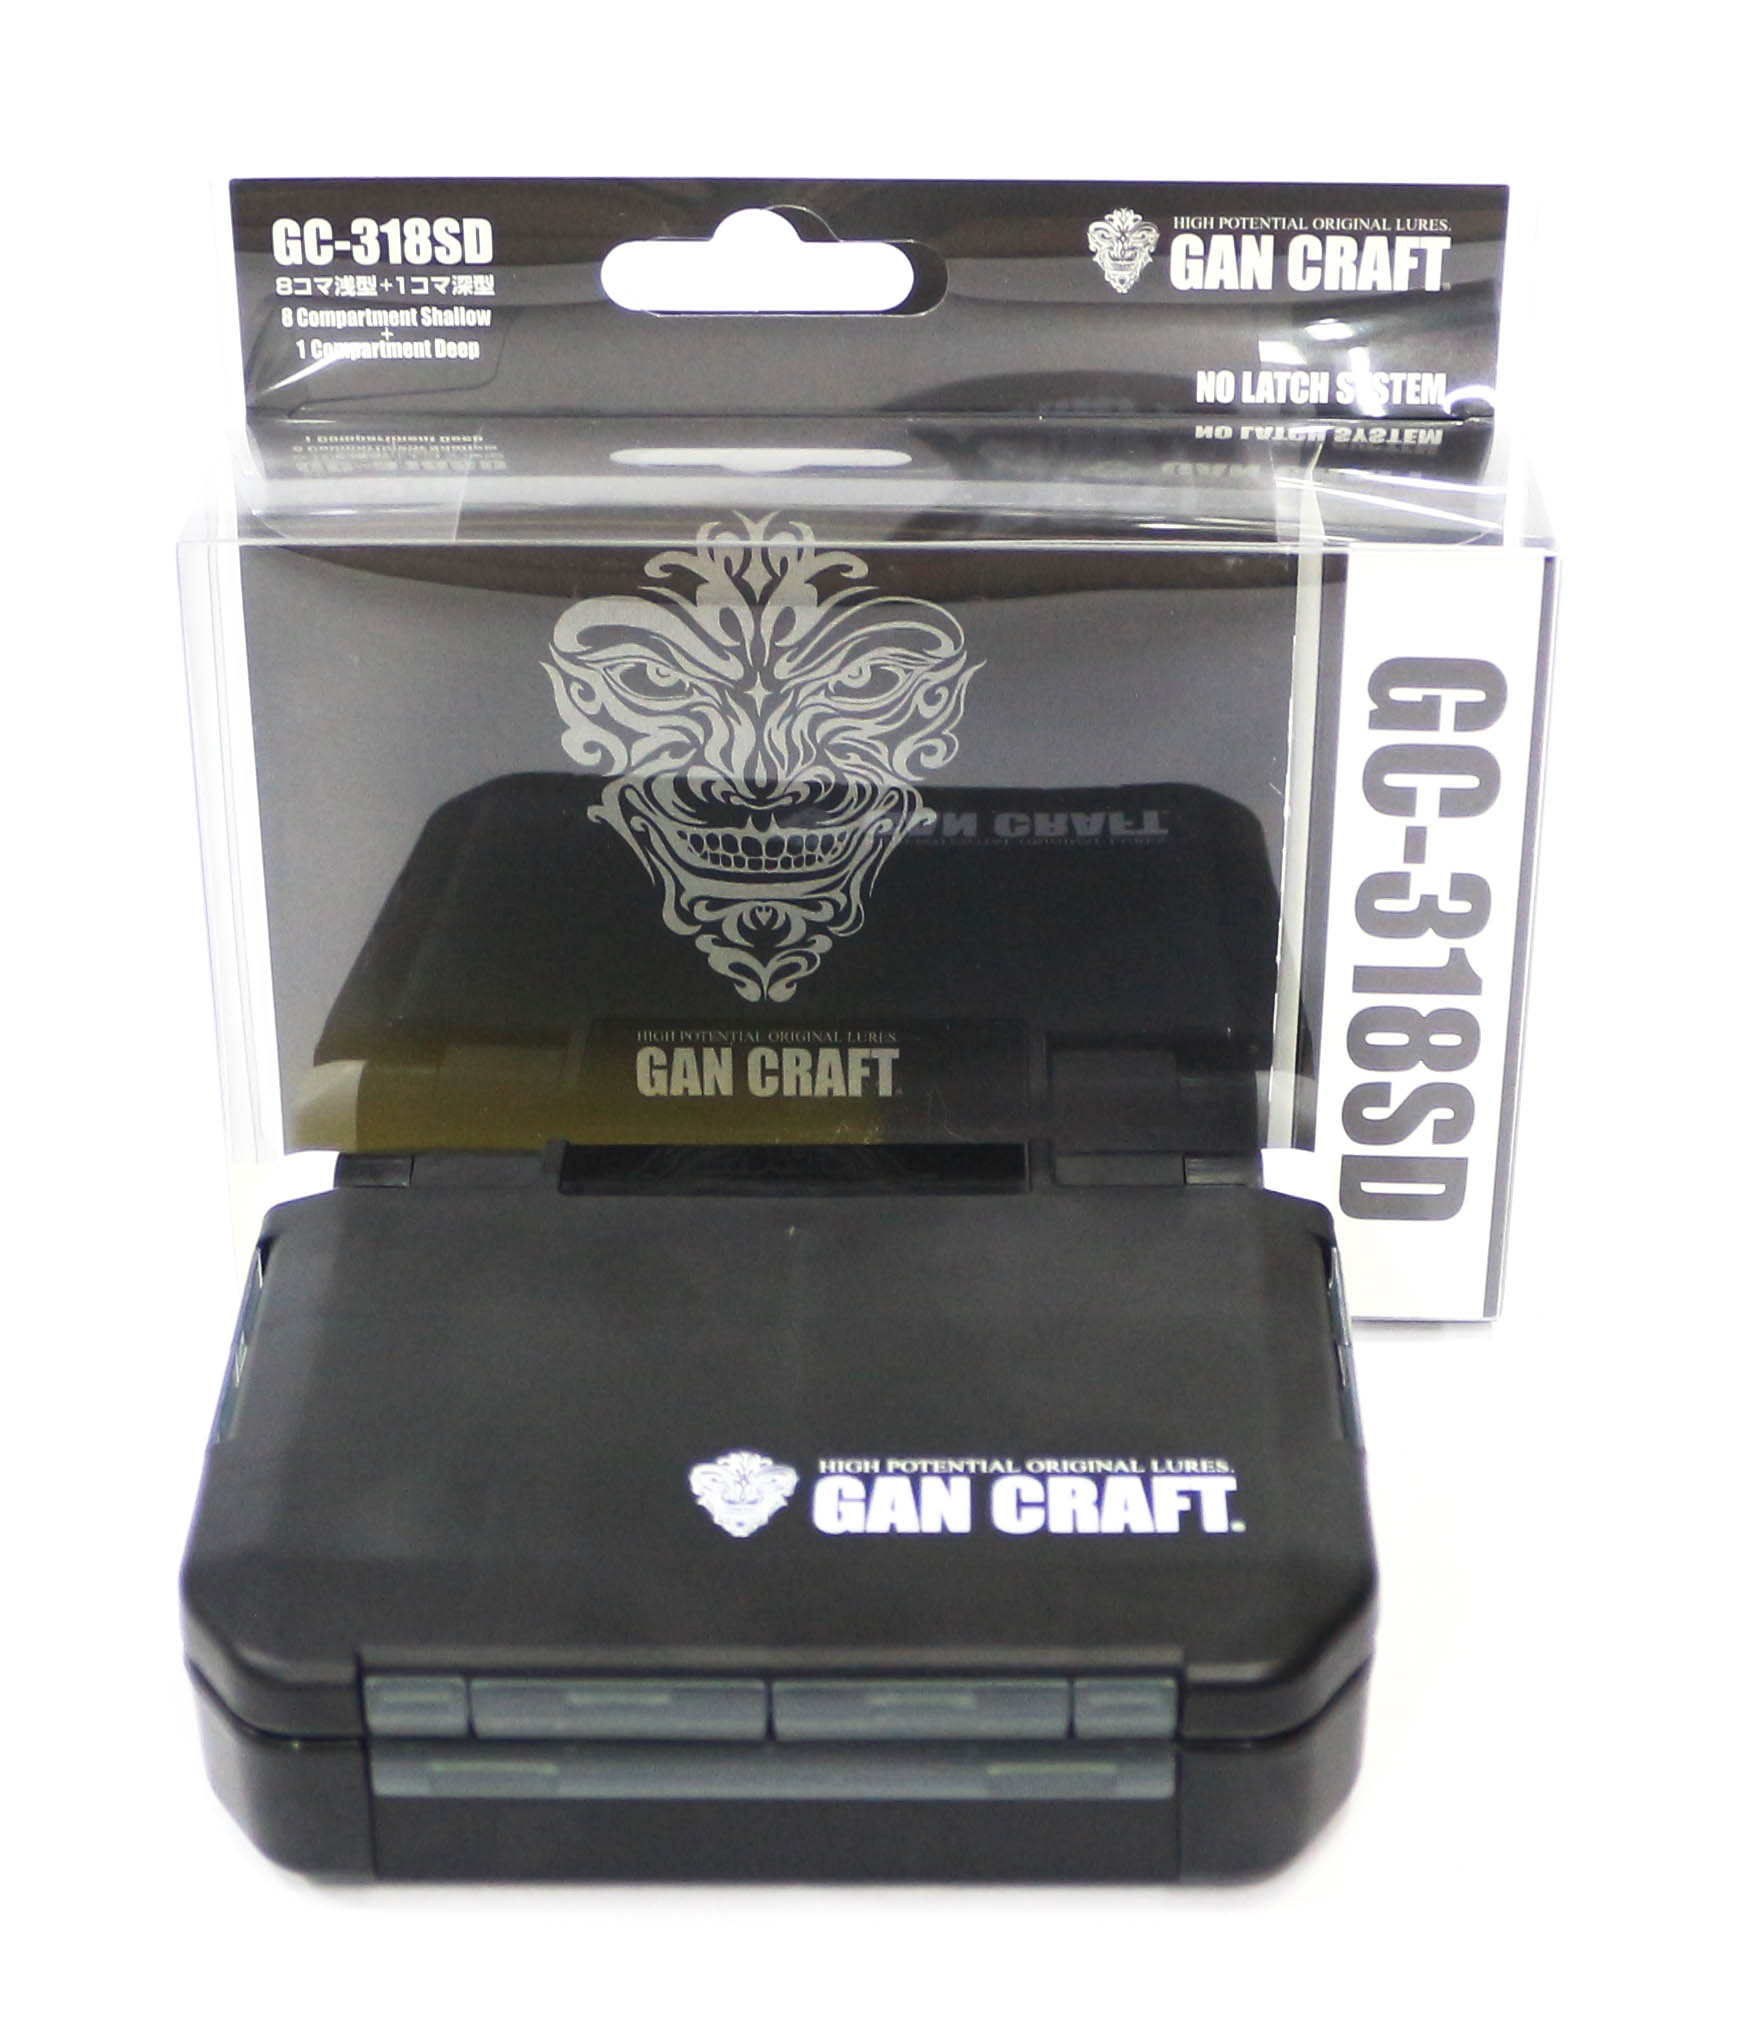 Gan Craft GC-318 SD Tackle Lure Box Case Original 122 x 87 x 34 mm Black (8908)